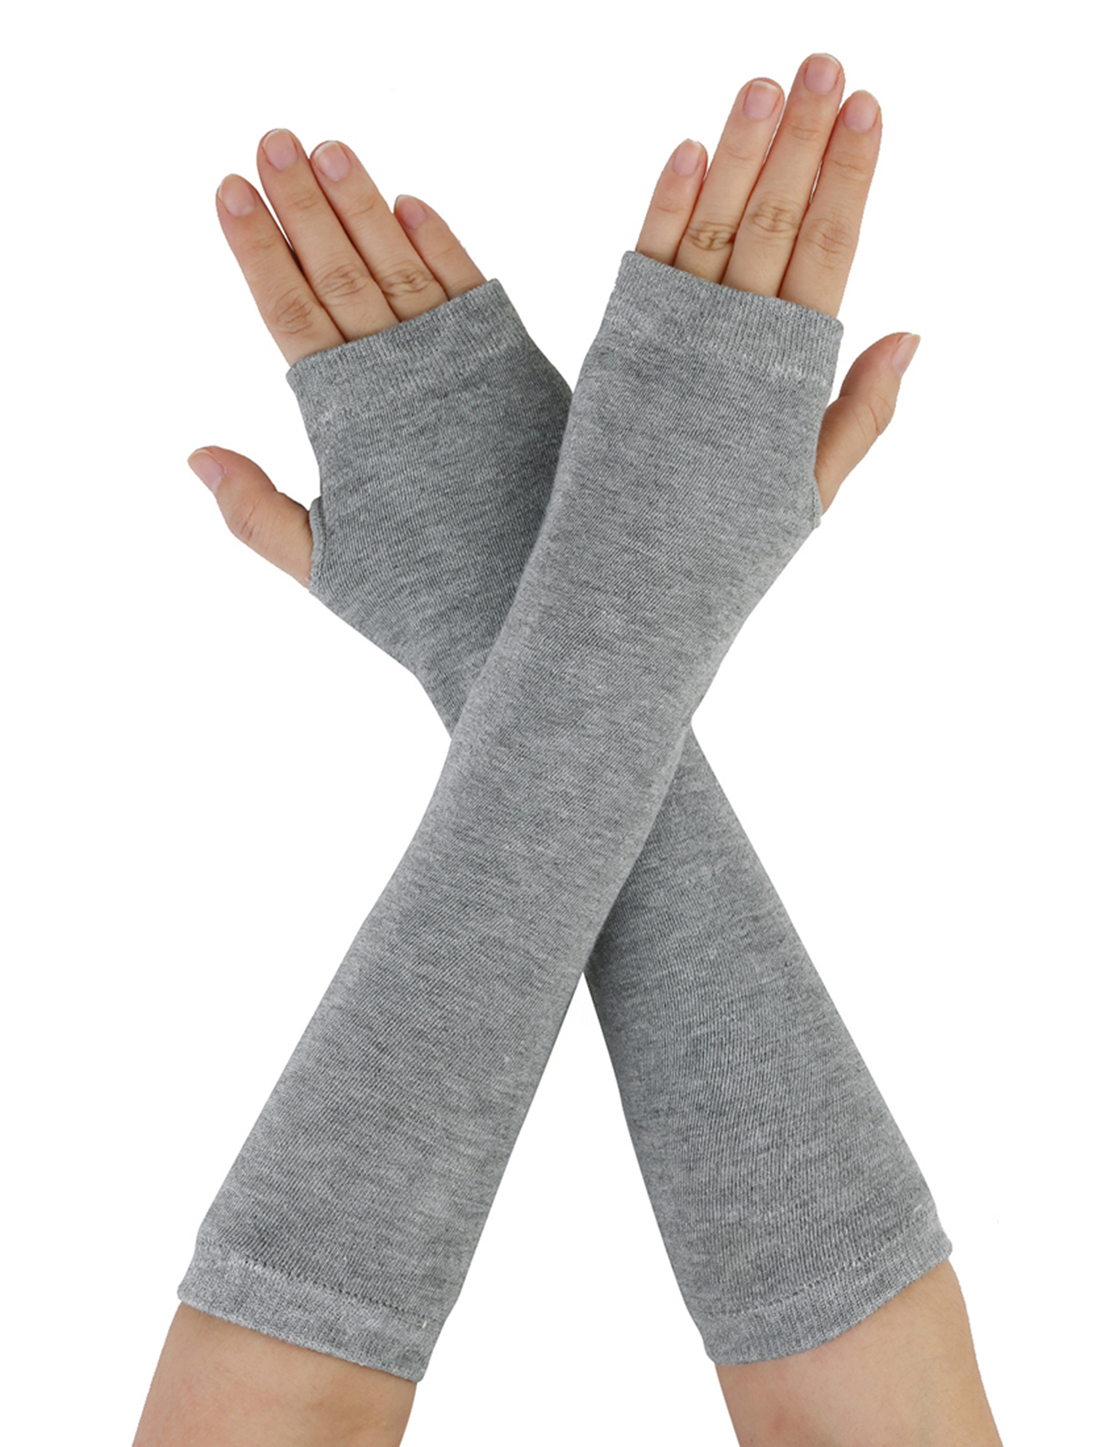 Korea New Fashion Light Gray Fingerless Arm Cover For Unisex